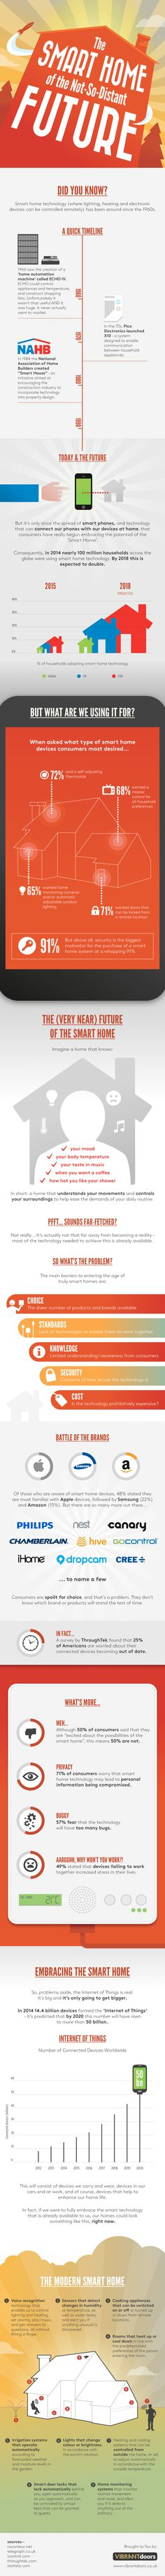 The Smart Home of The Not-So-Distant Future - Infographic | Graphics Pedia